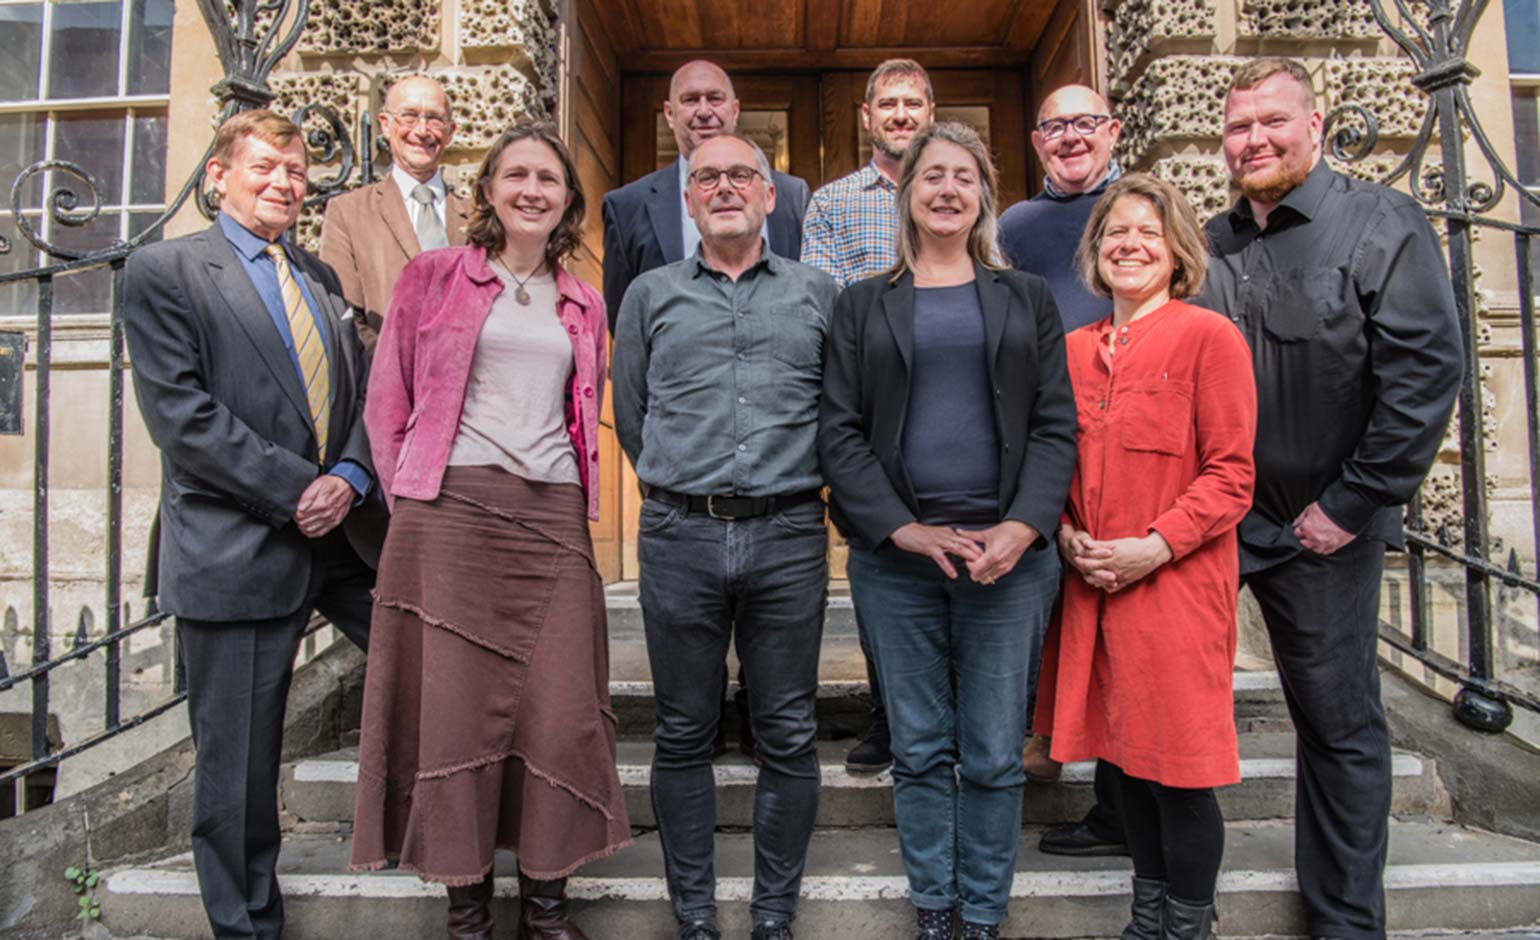 B&NES Council's new administration shares ambitions for next four years | Bath Echo